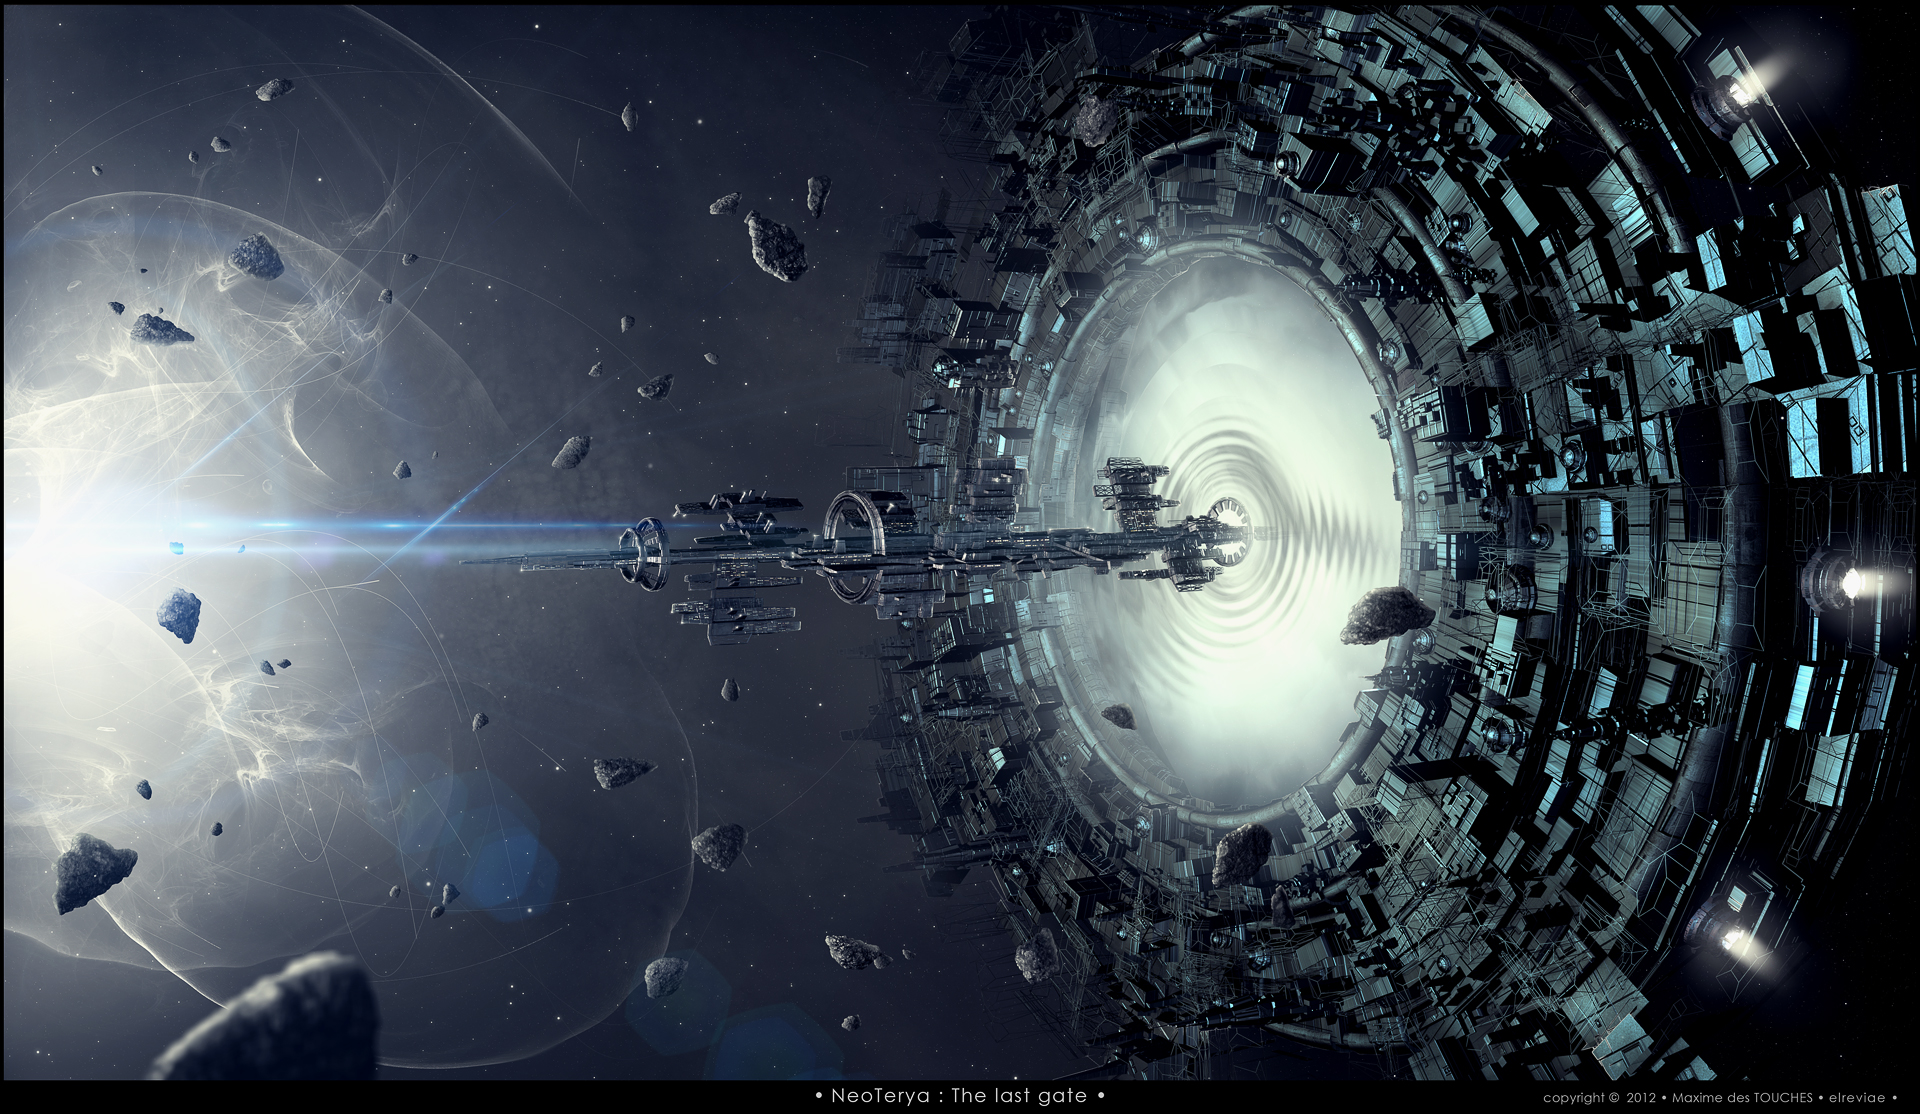 NeoTerya The last gate science fiction art project